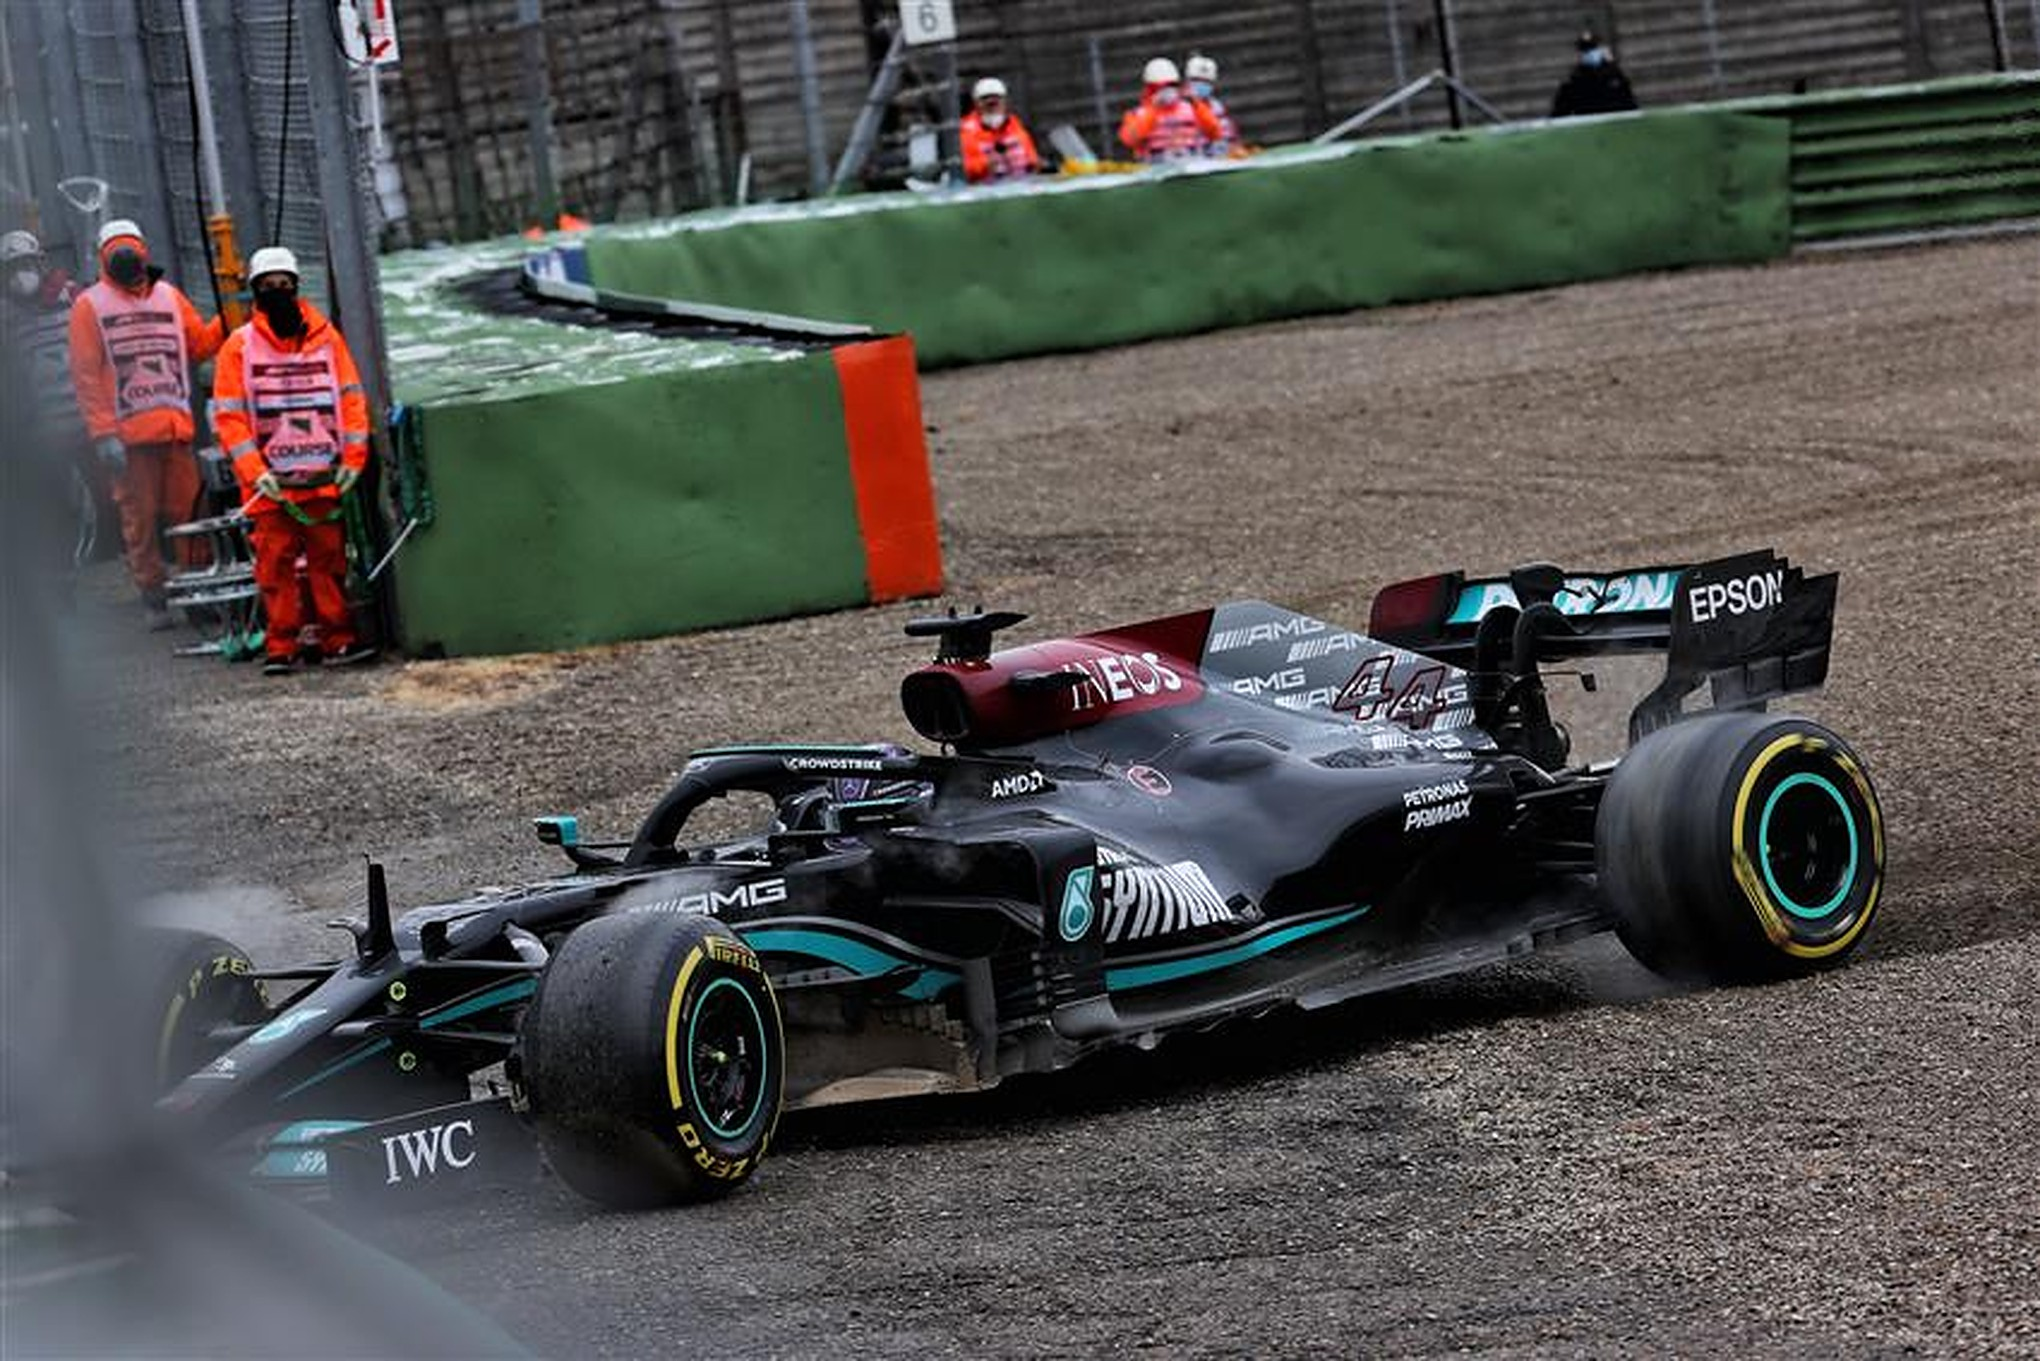 Lewis Hamilton in the gravel at Imola - Formula1news.co.uk